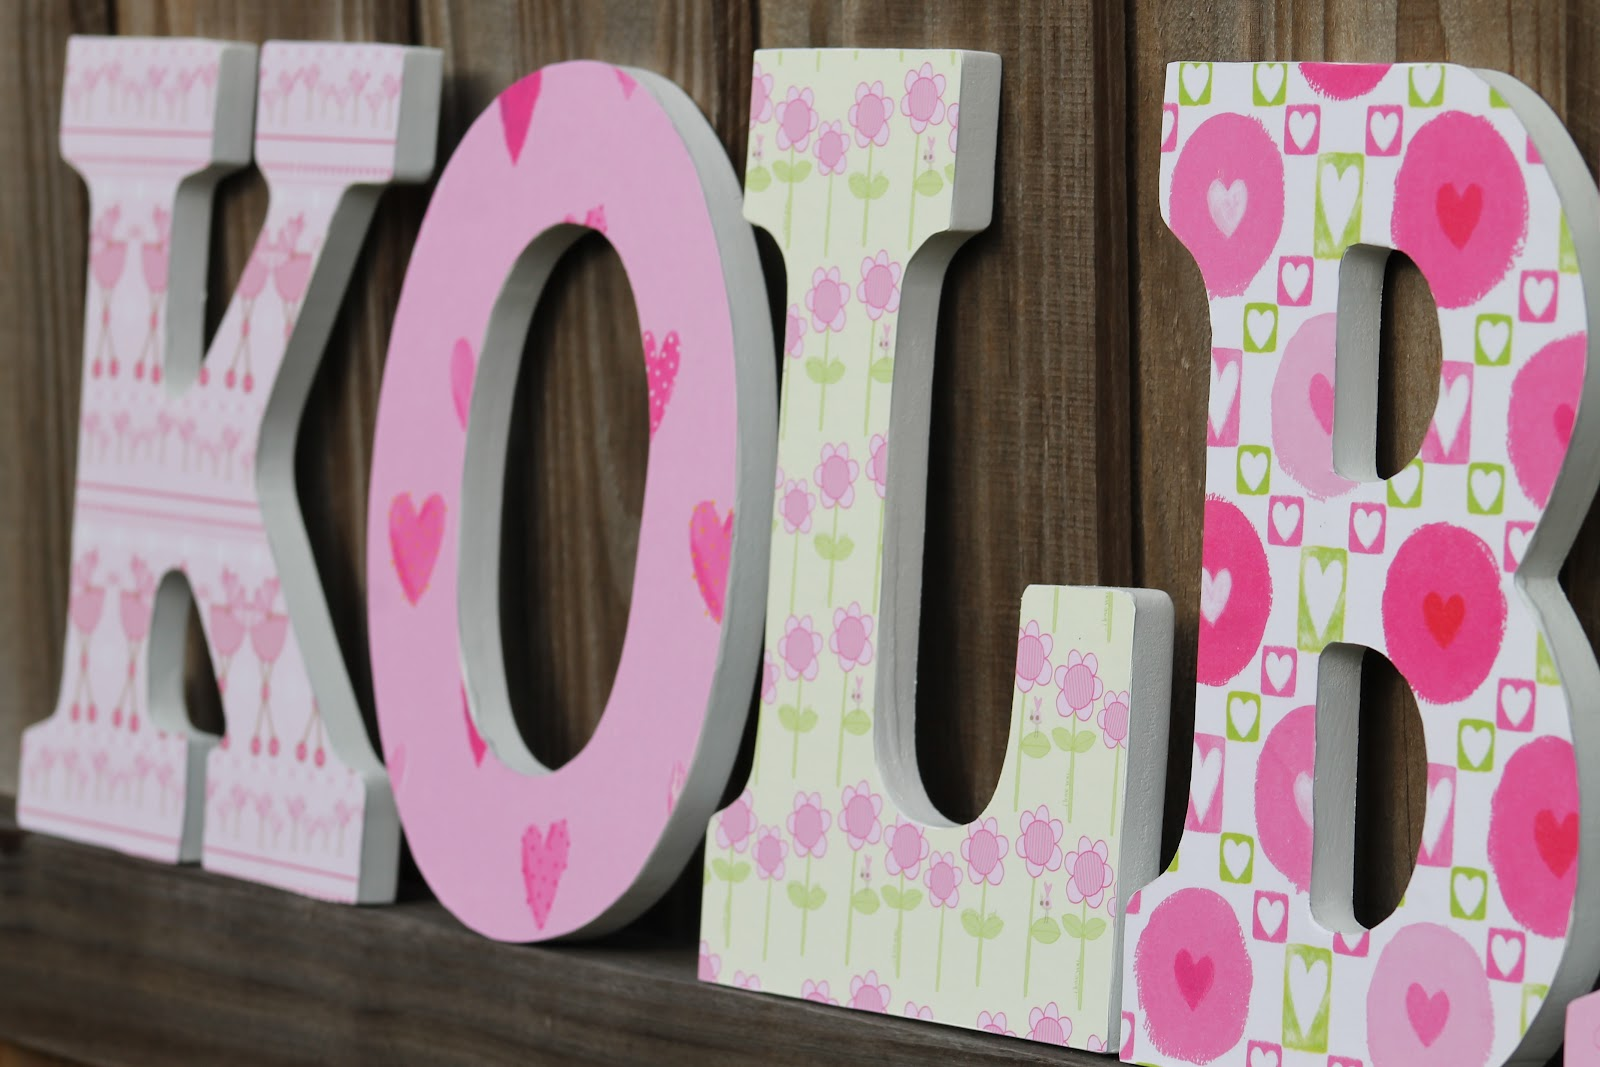 Desperate Craftwives Nursery Wall Letters